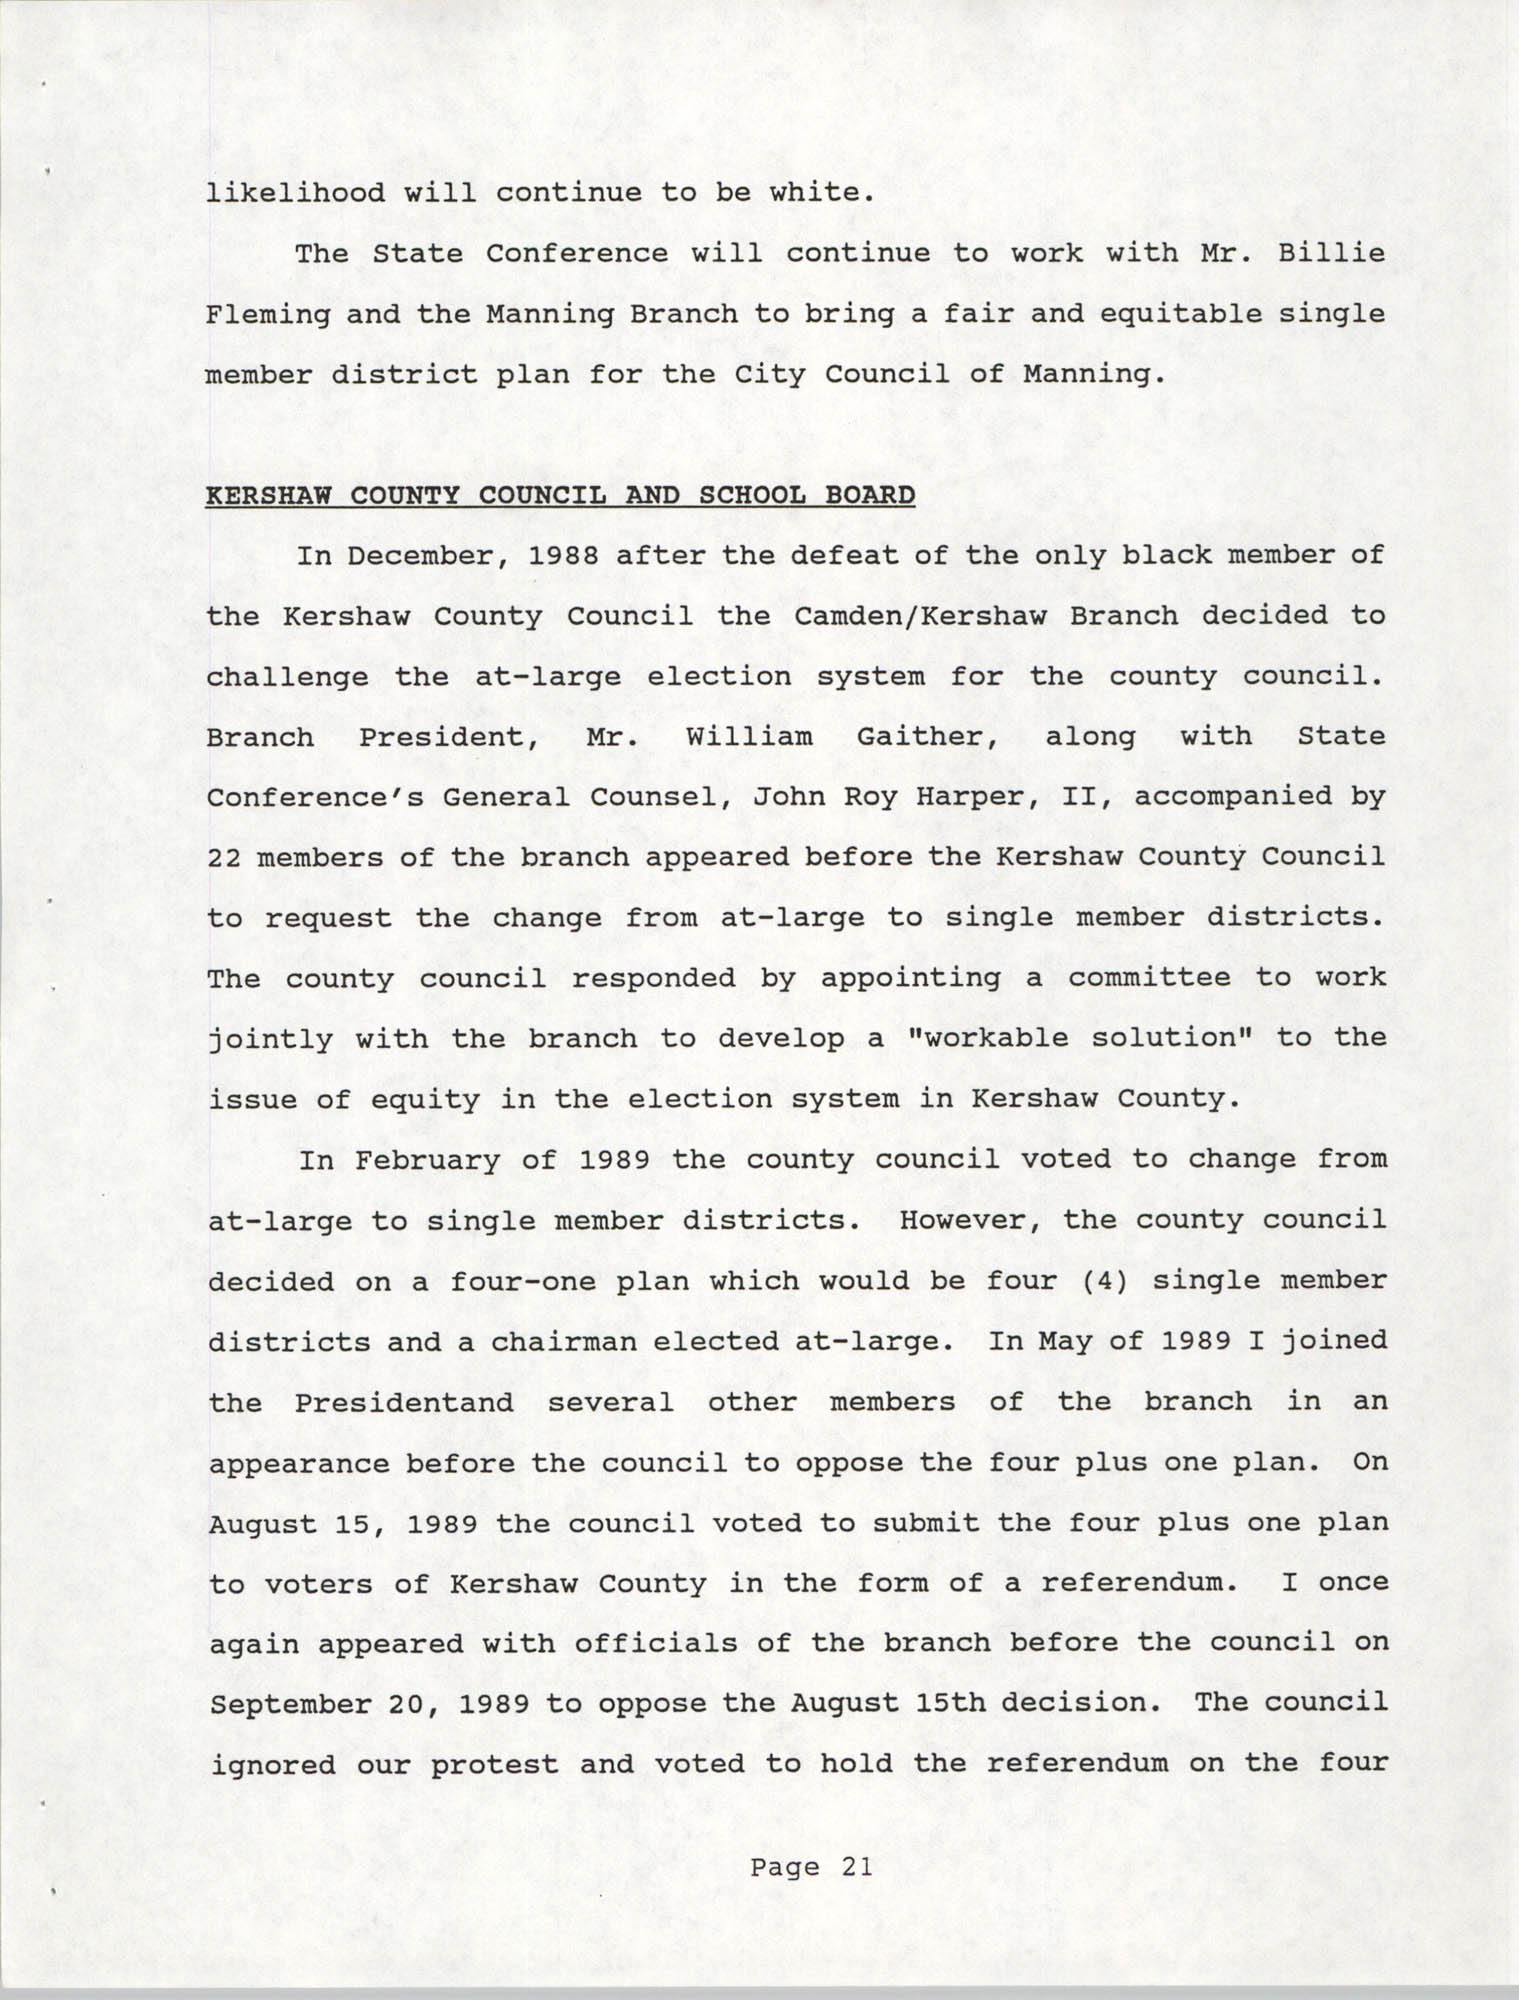 South Carolina Conference of Branches of the NAACP, 1990 Annual Report, Part One, Page 21